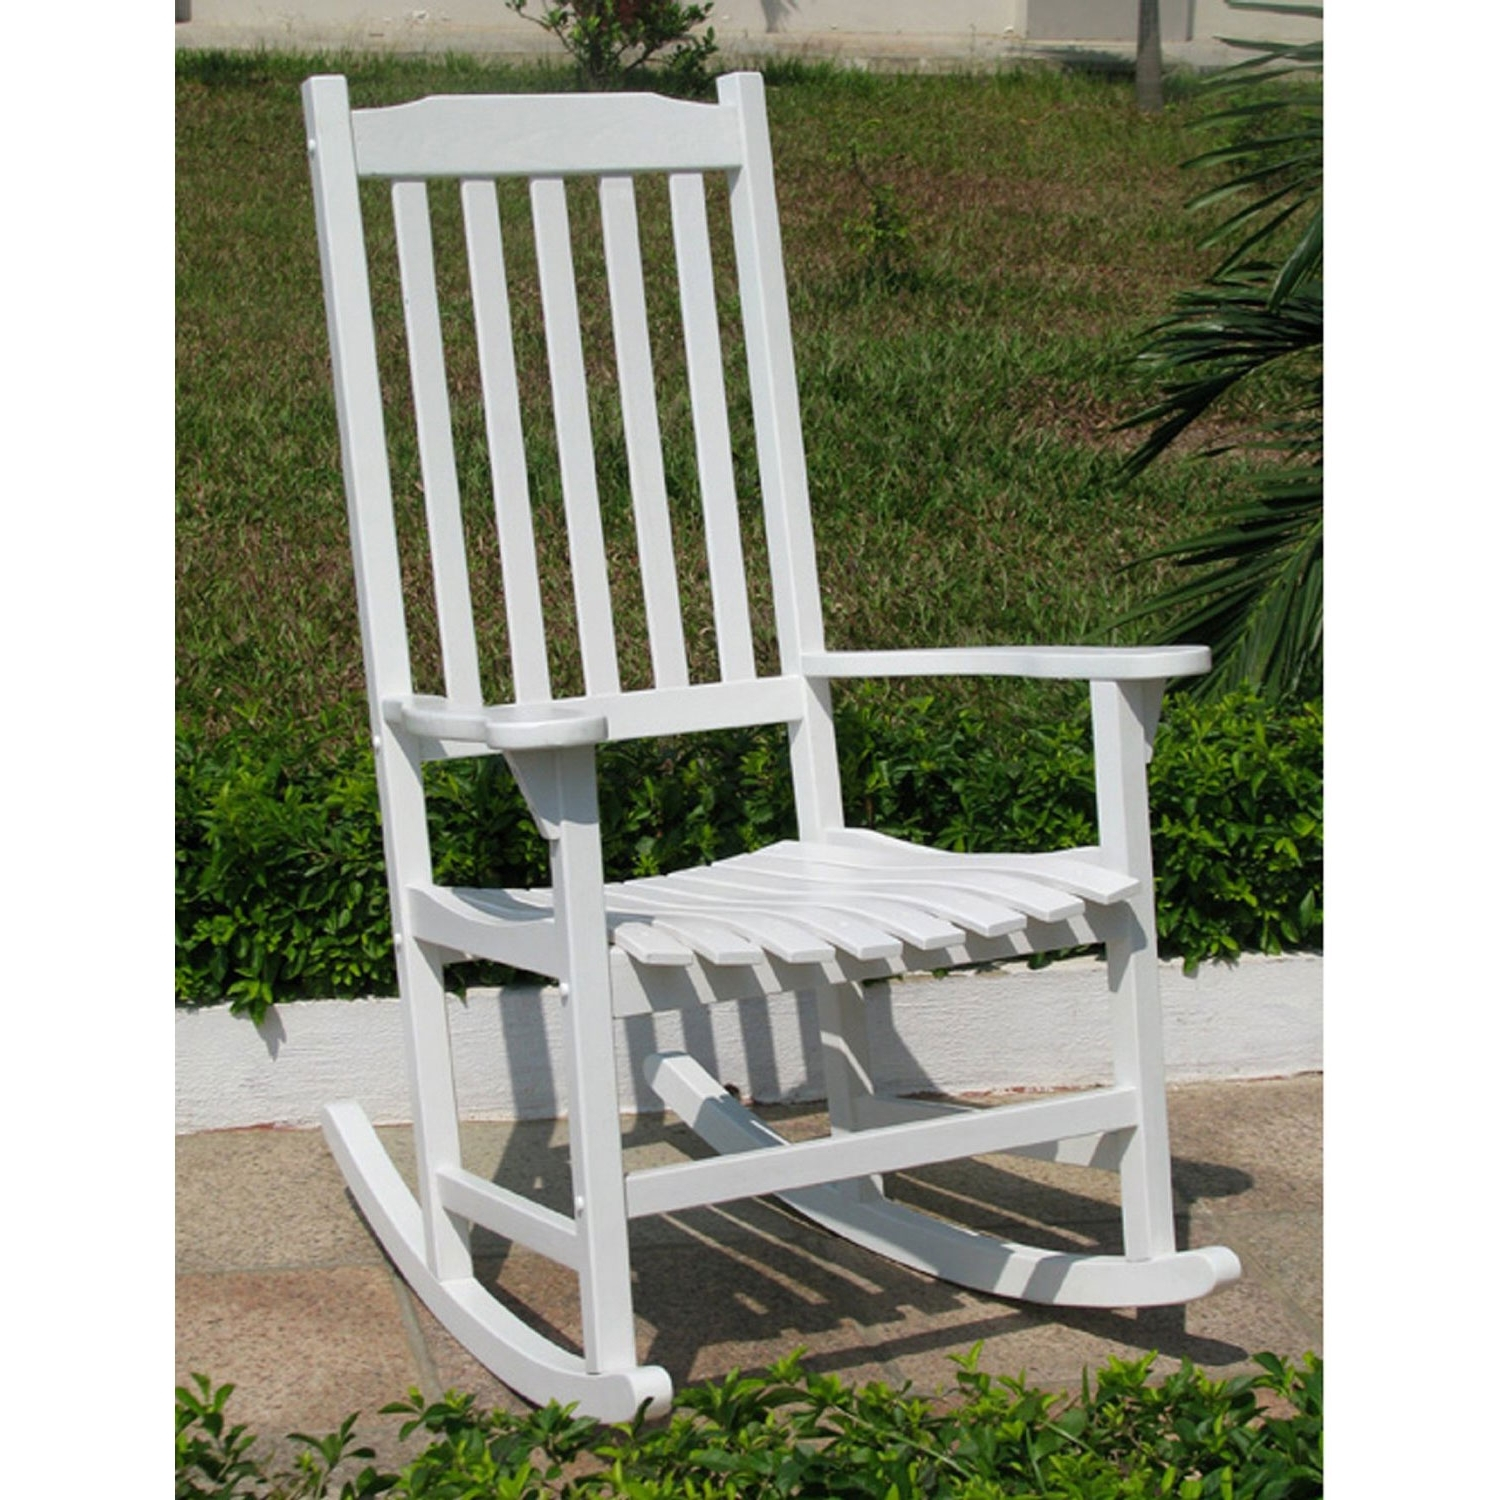 Inexpensive Patio Rocking Chairs Throughout Current Lovely Cheap Patio Chairs Semco Recycled Plastic Rocking Chair (View 5 of 20)